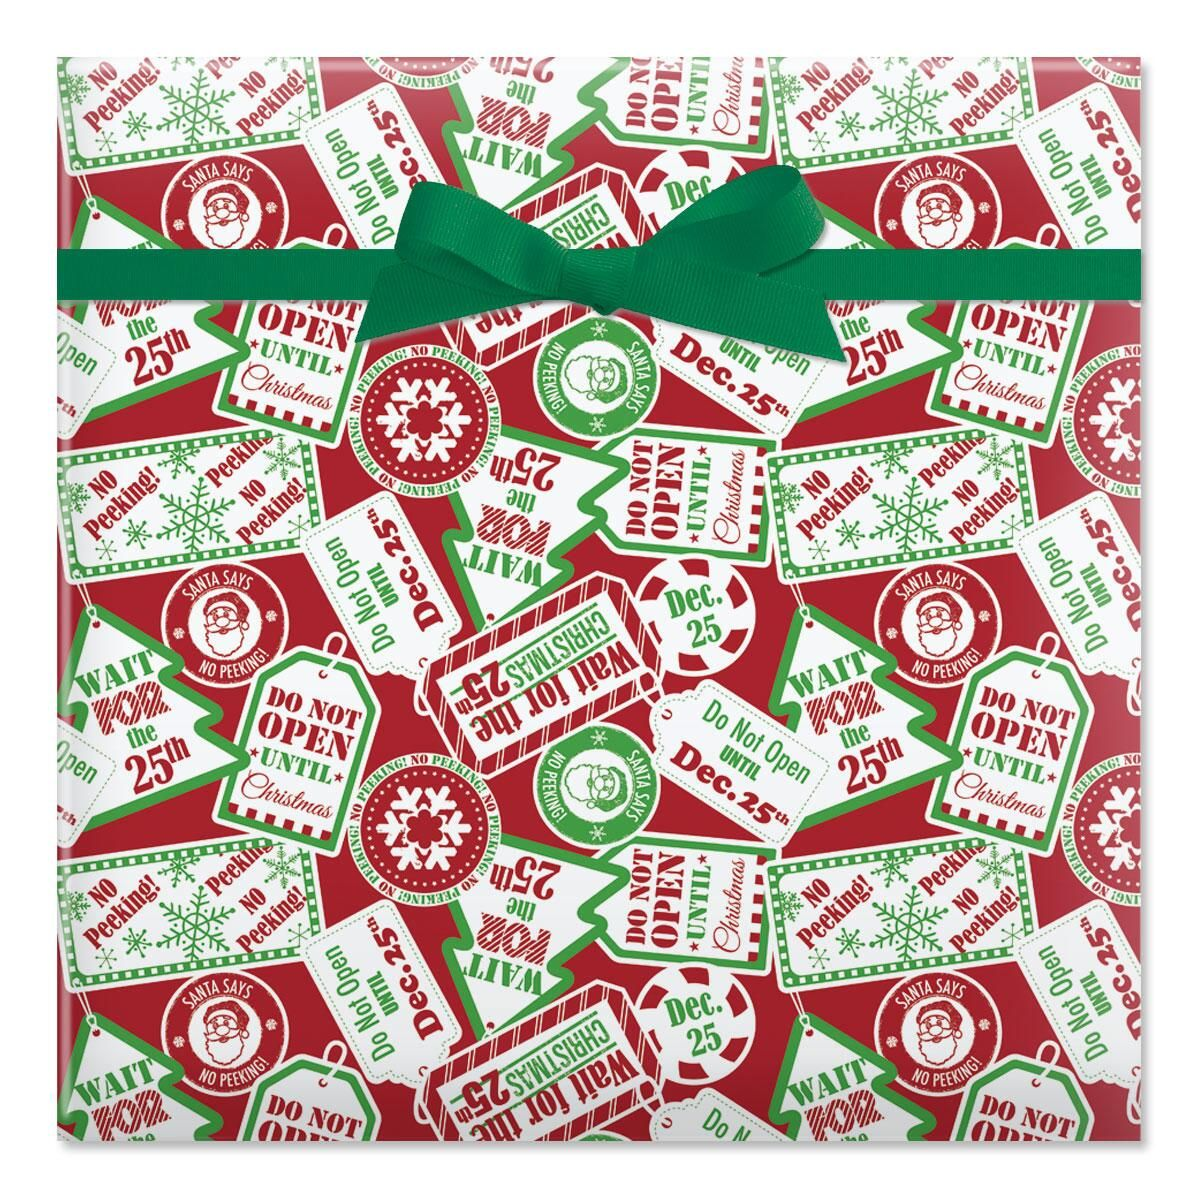 cheap gift wrapping paper Papercraft products is the best place to get wholesale everyday gift wrap for birthdays, weddings, new babies, and more  including wholesale gift wrapping paper .